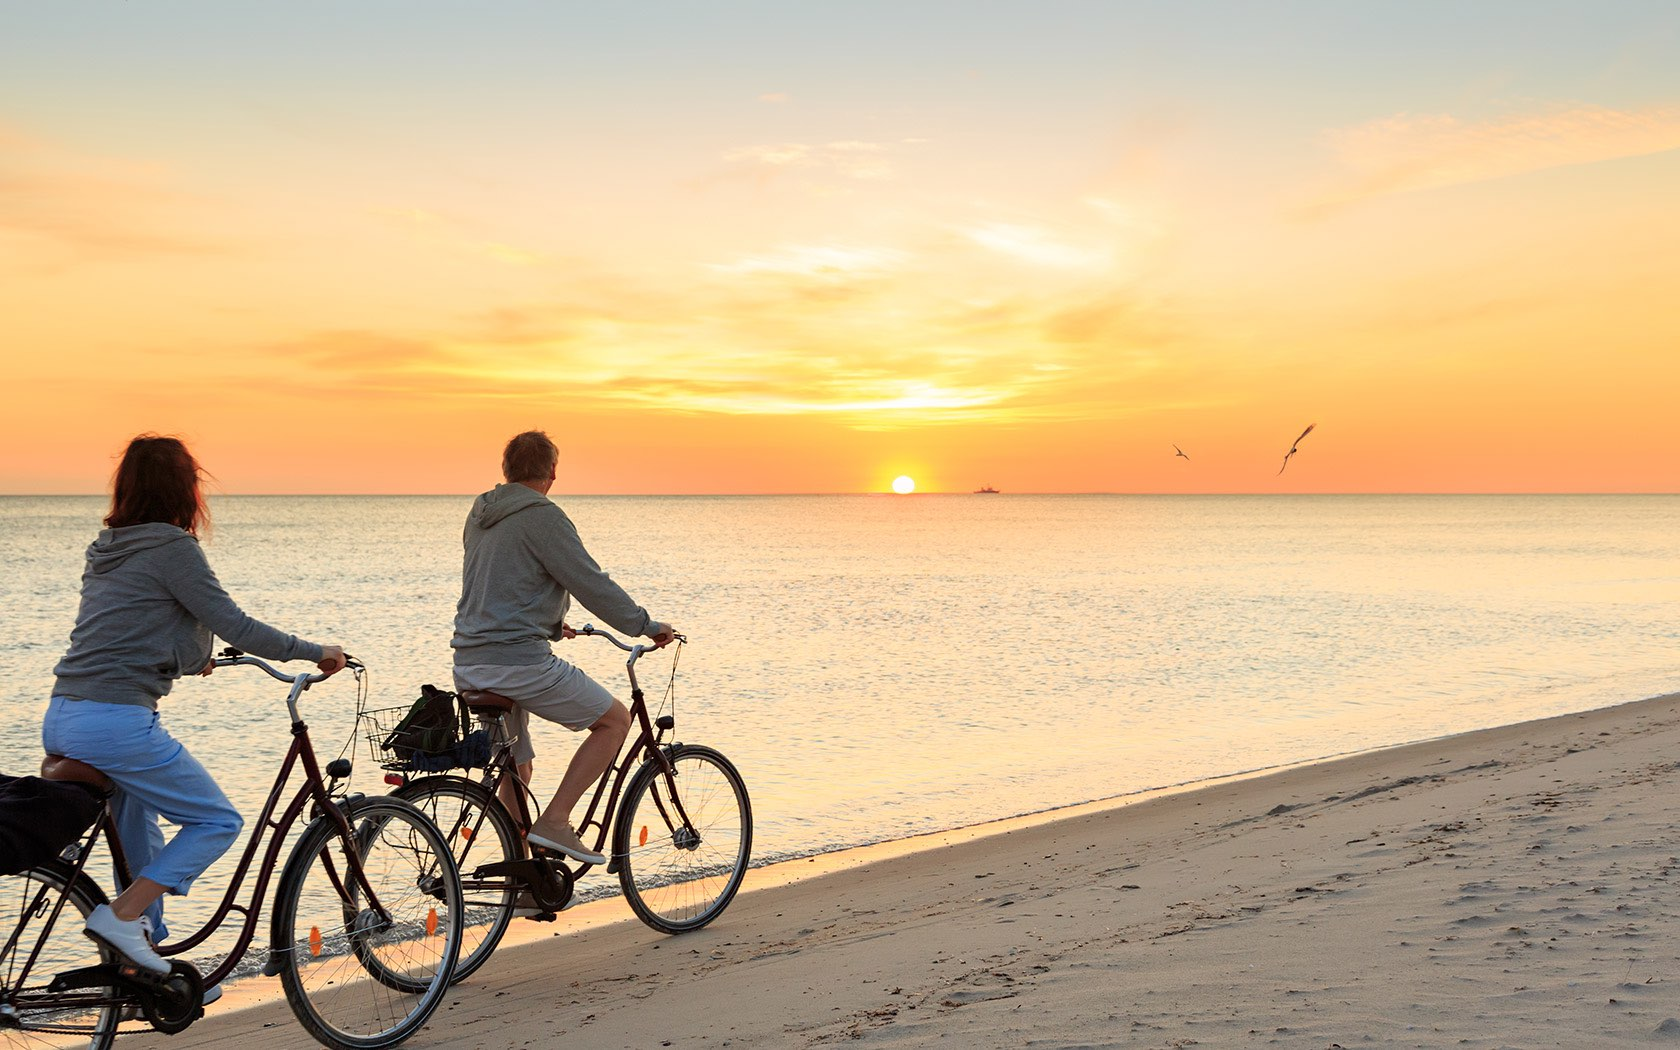 Riding Their Bikes On Sand By The Water During Sunset